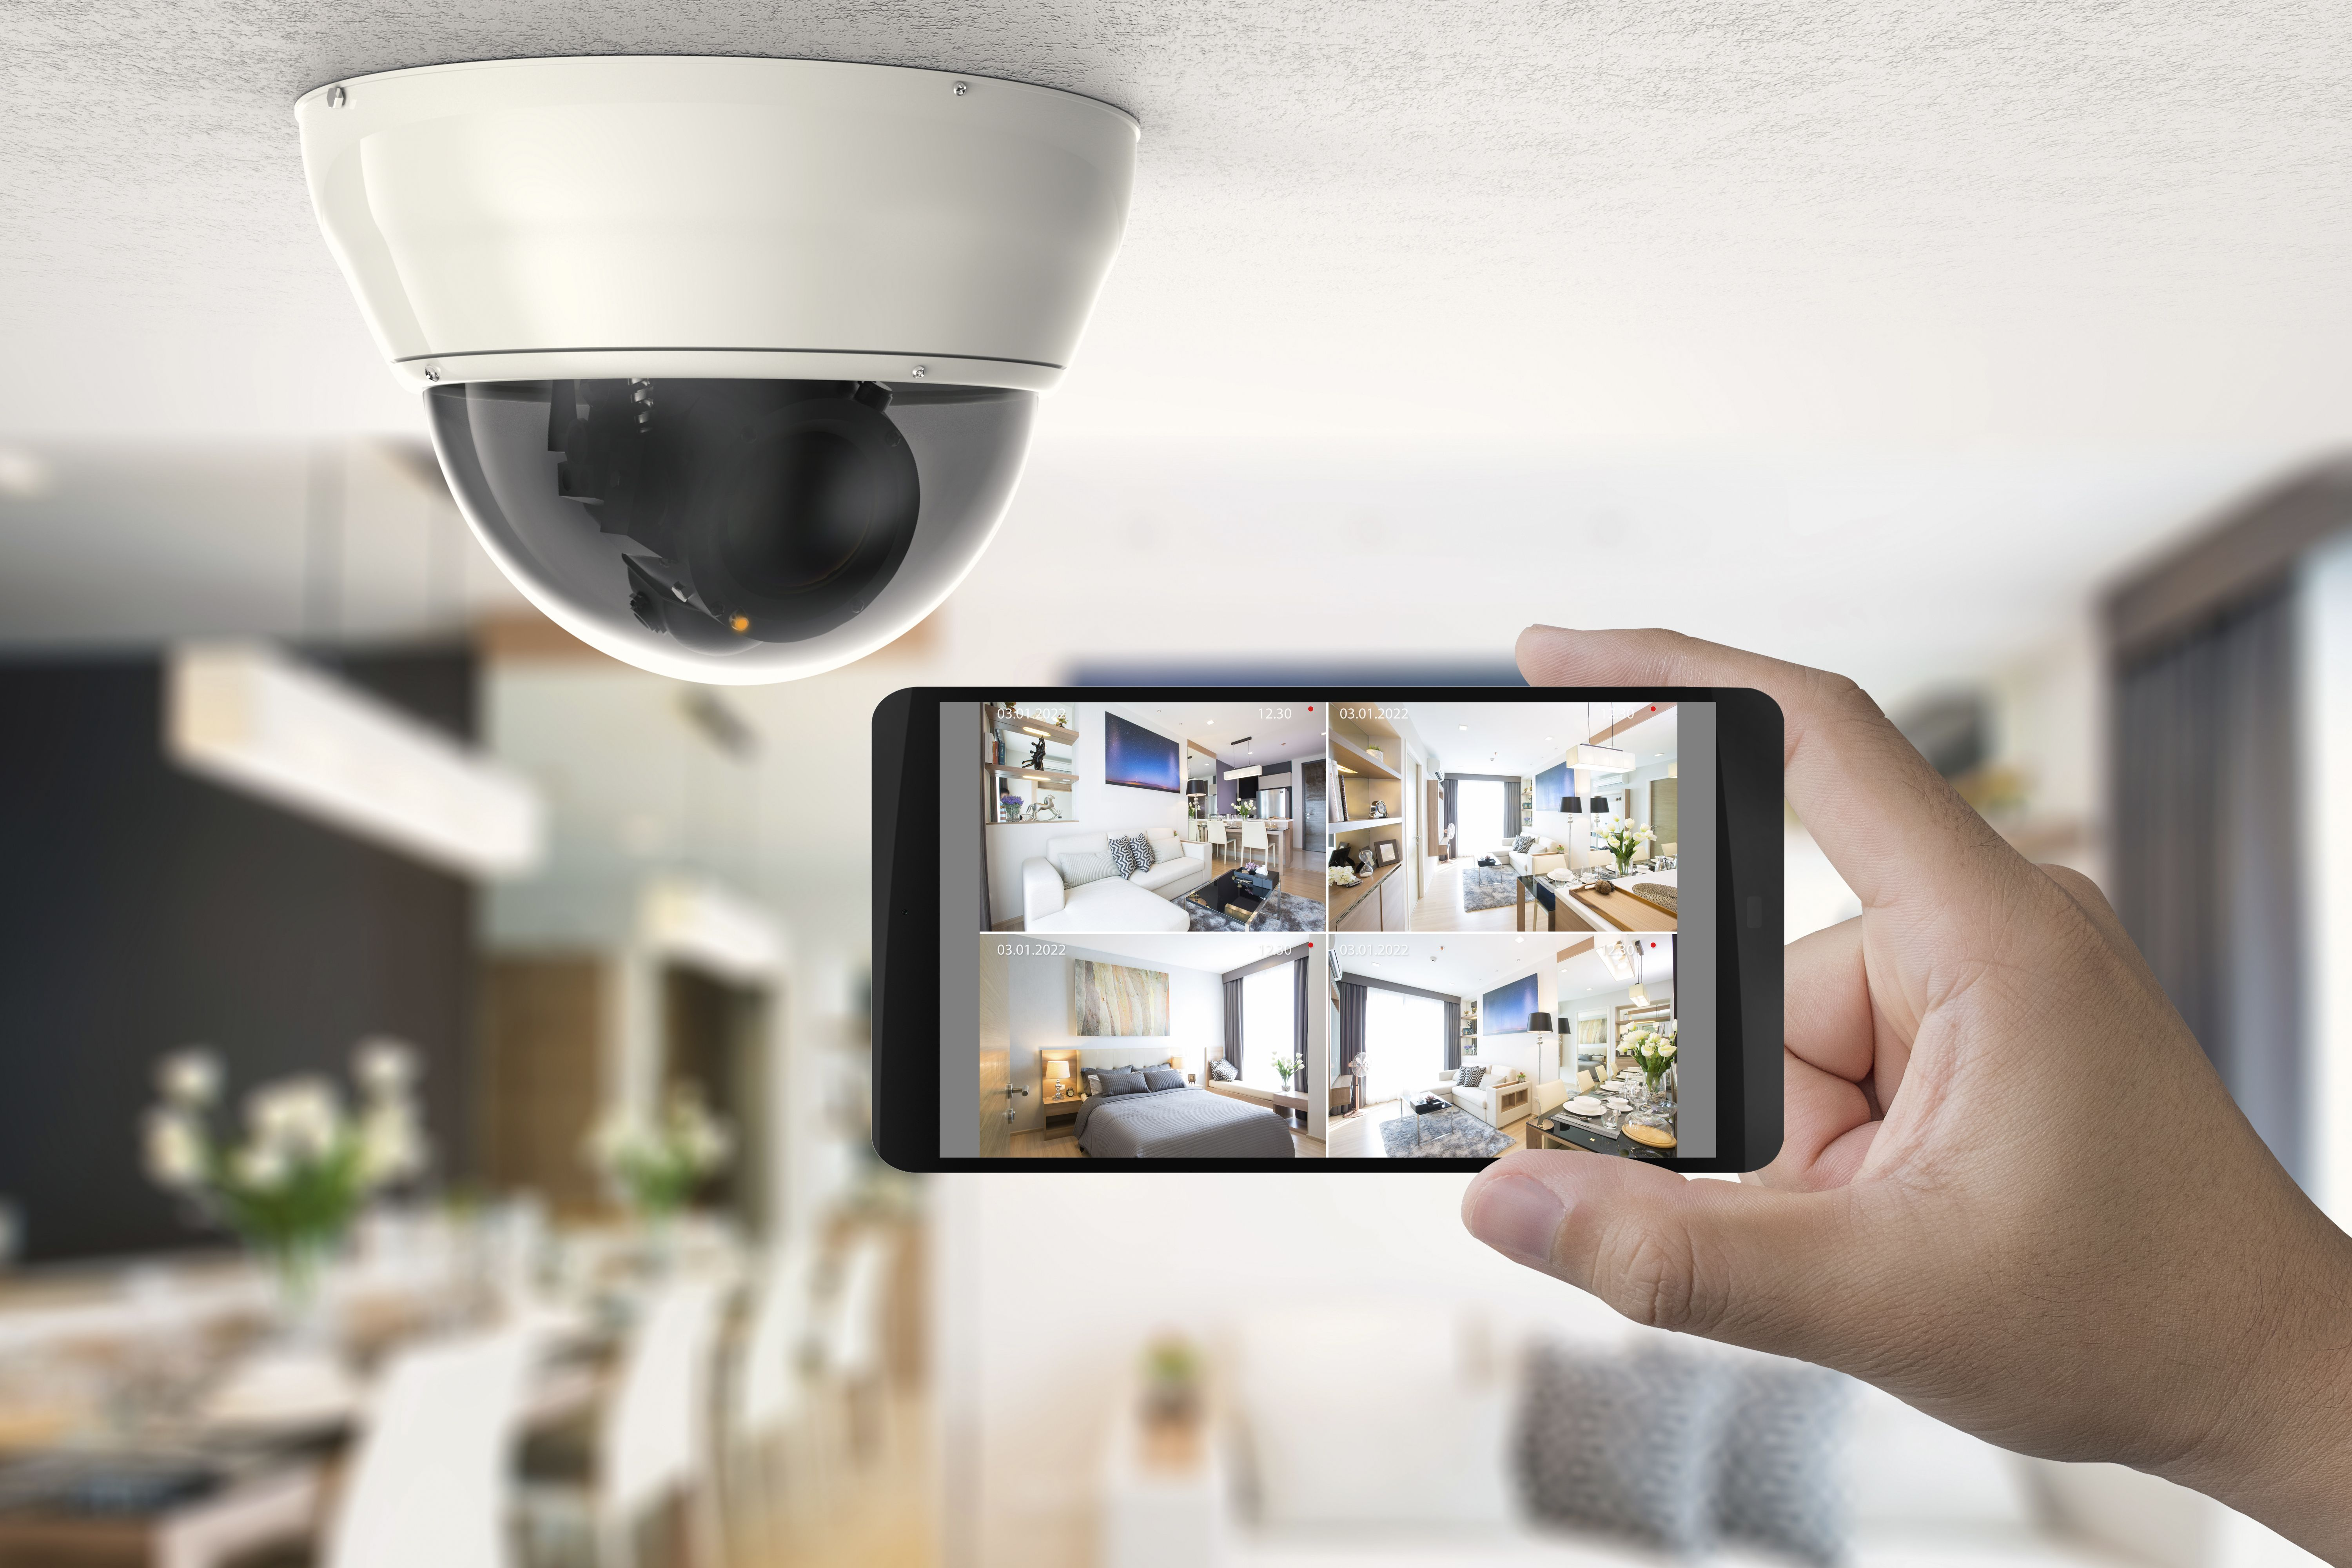 Who's knocking? Watch over your home or business in full HD cameras